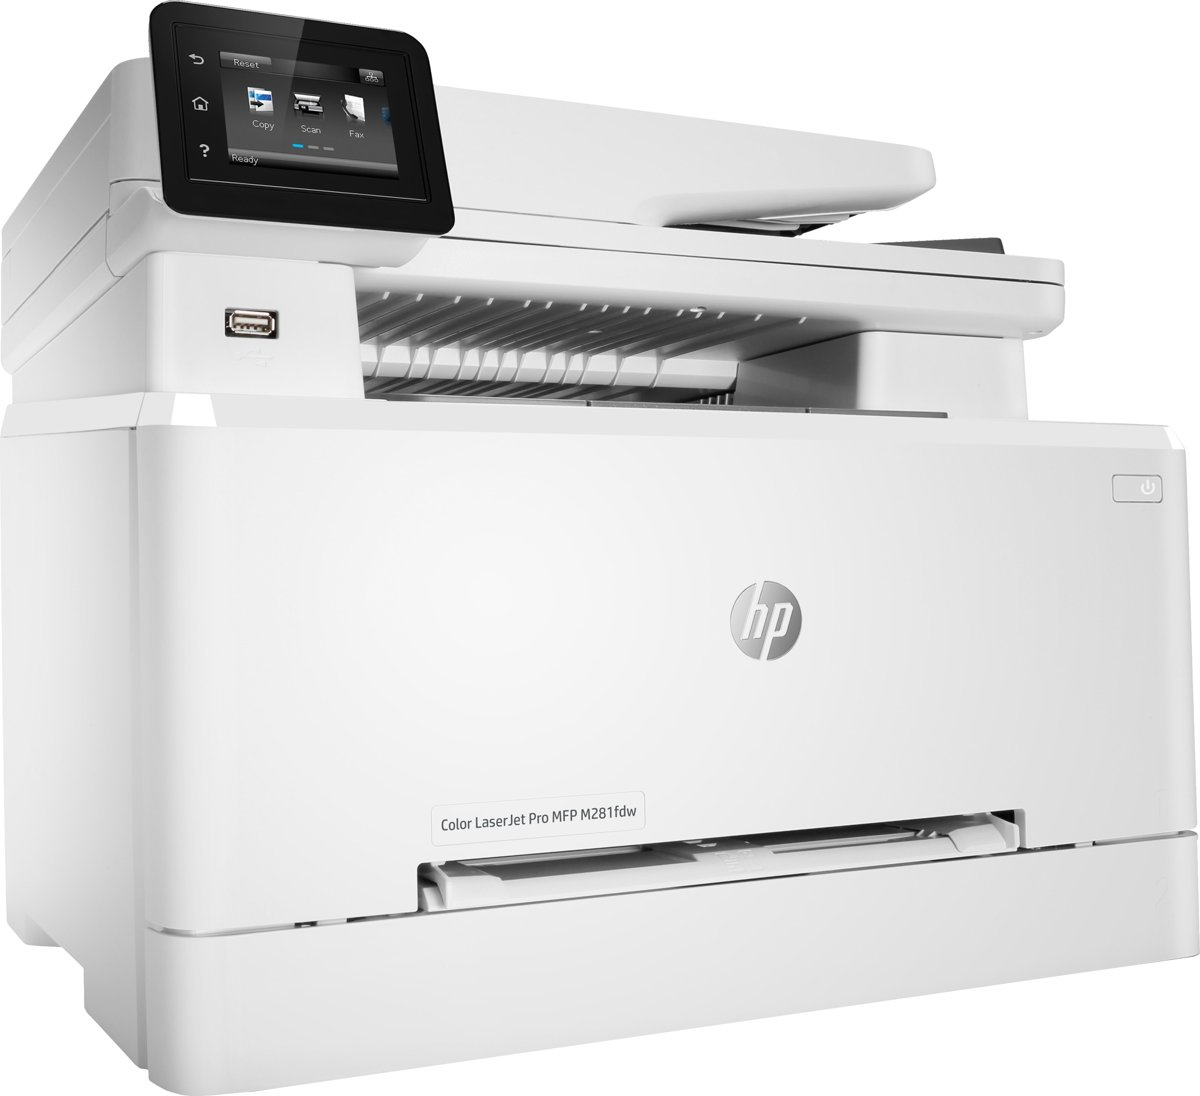 HP Color LaserJet Pro MFP M281fdw - All-in-One Laserprinter